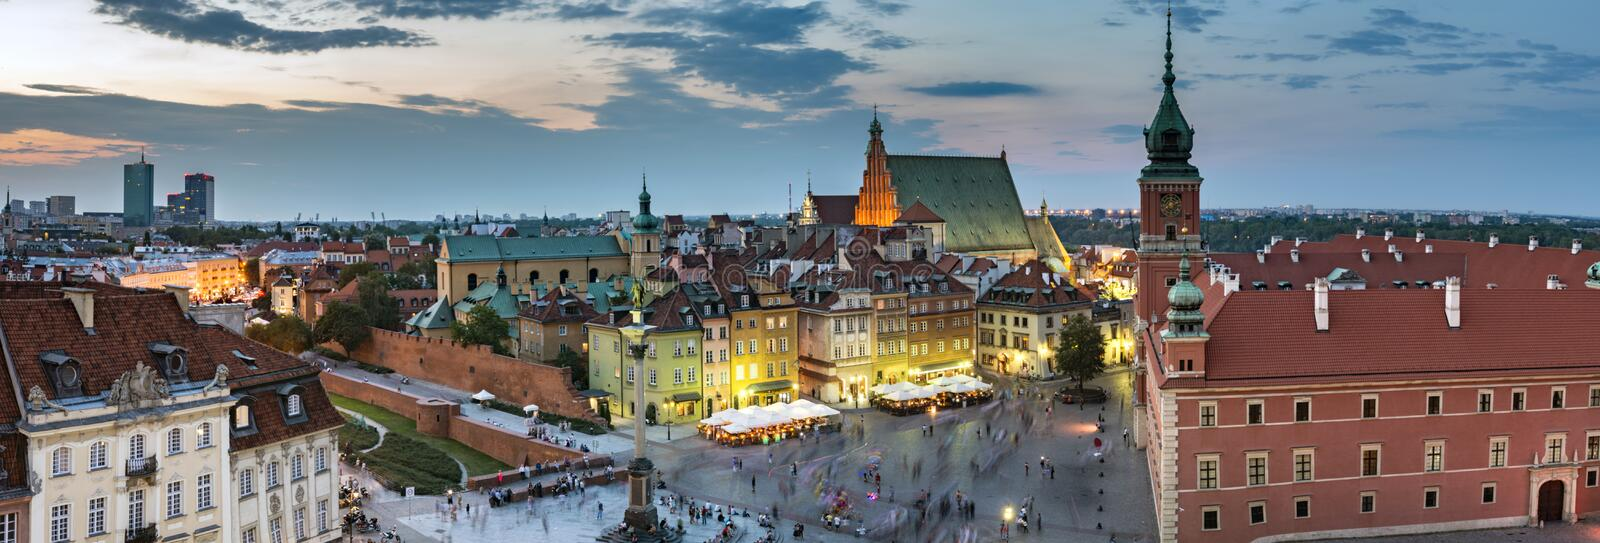 Night Panorama of Old Town in Warsaw royalty free stock photography